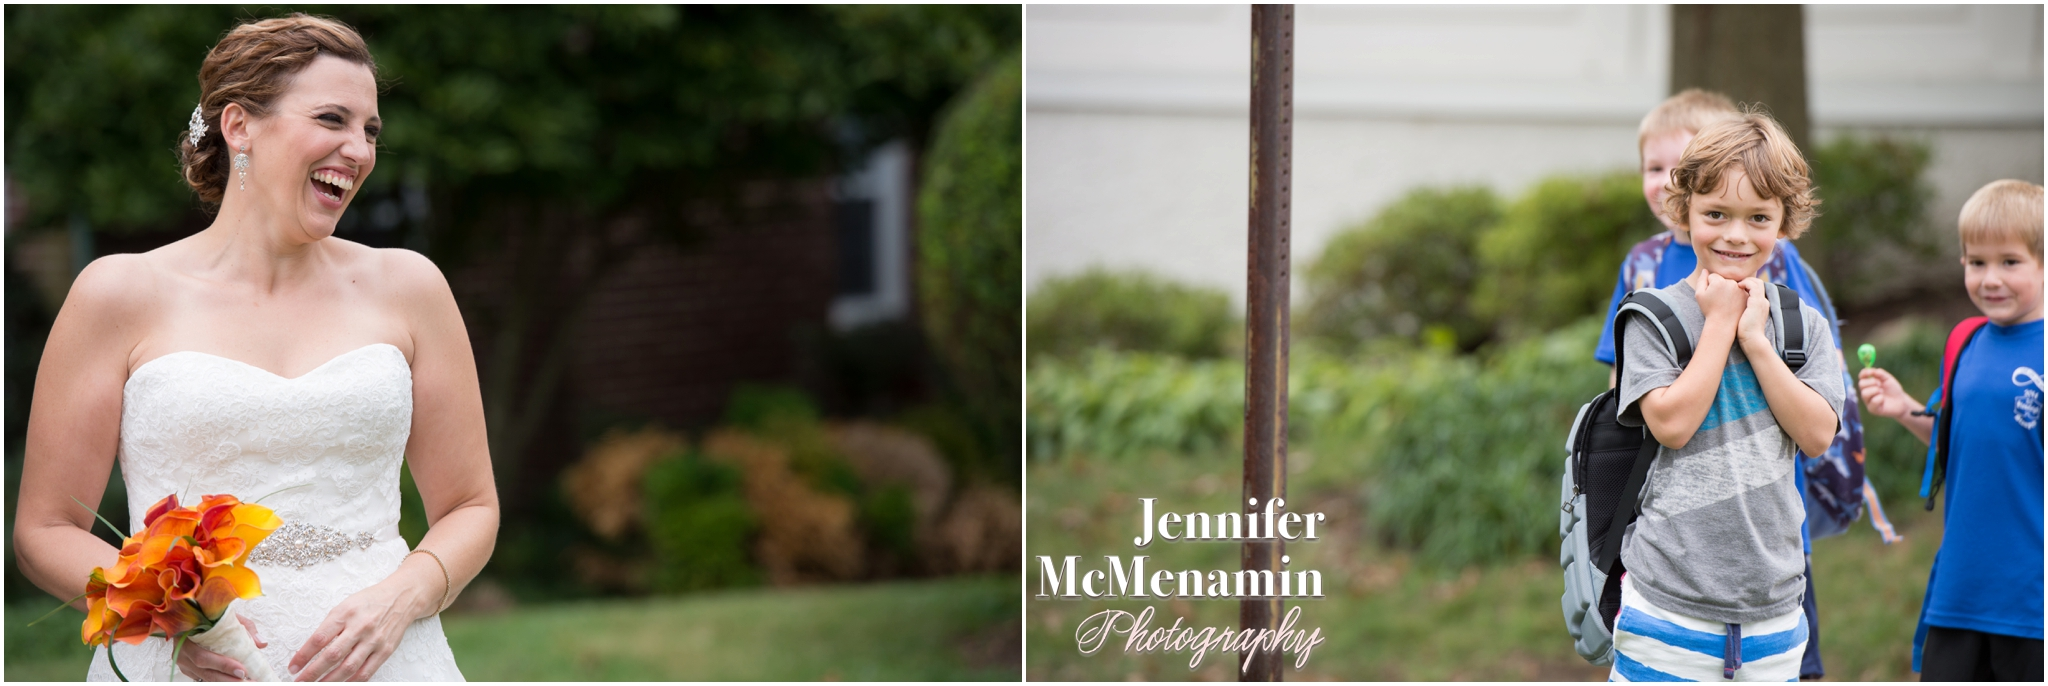 028-HenningMiller_00954-0177_JenniferMcMenaminPhotography_Evergreen-Museum-And-Carriage-House_Evergreen-wedding_Baltimore-wedding-photographer_Baltimore-wedding-photography